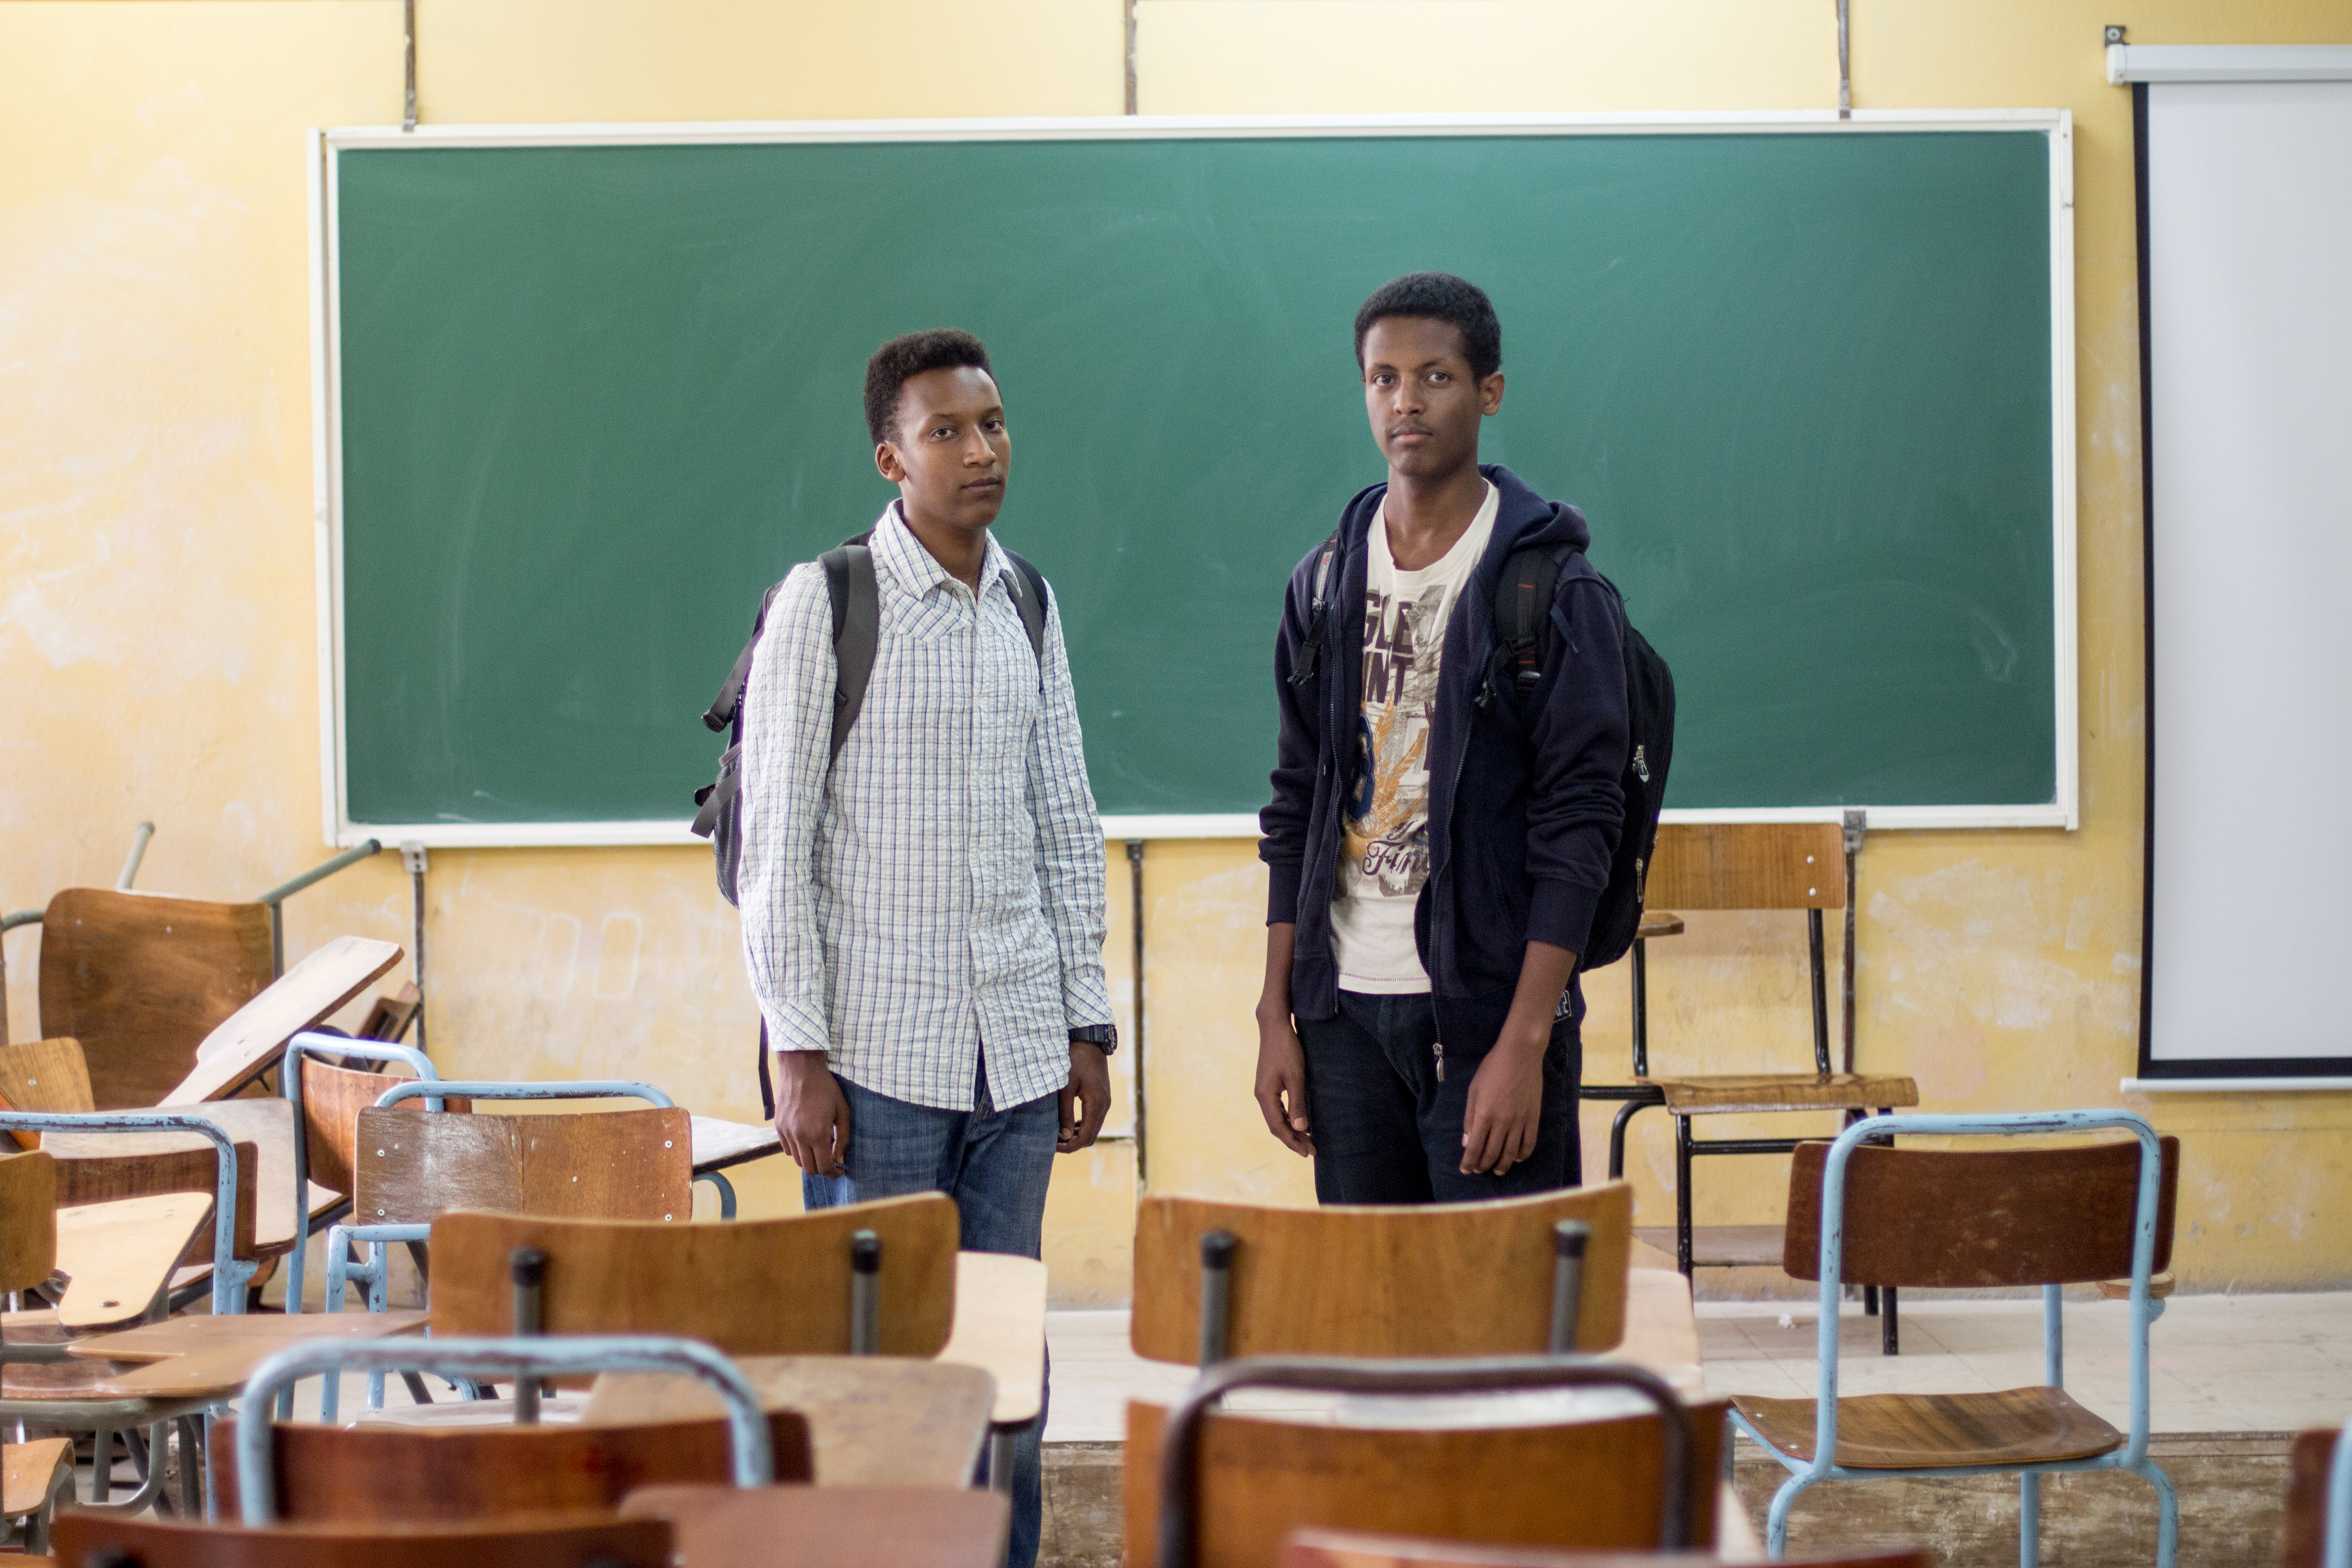 Nathnael Dejene and Yohannes Fassil complained about absent professors.